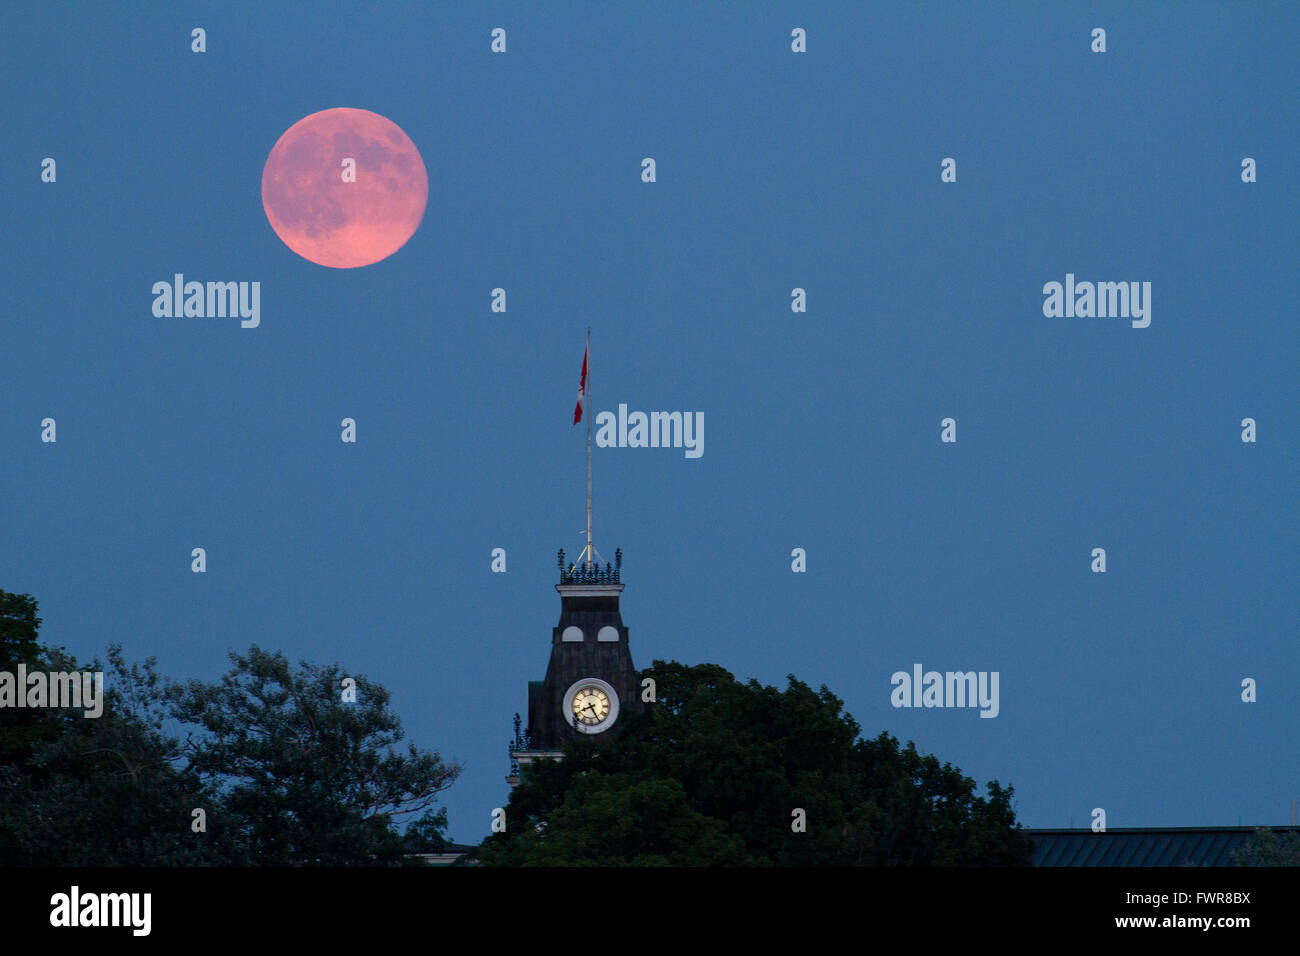 The Super Moon Rises Over The Clock Tower At Royal Military College